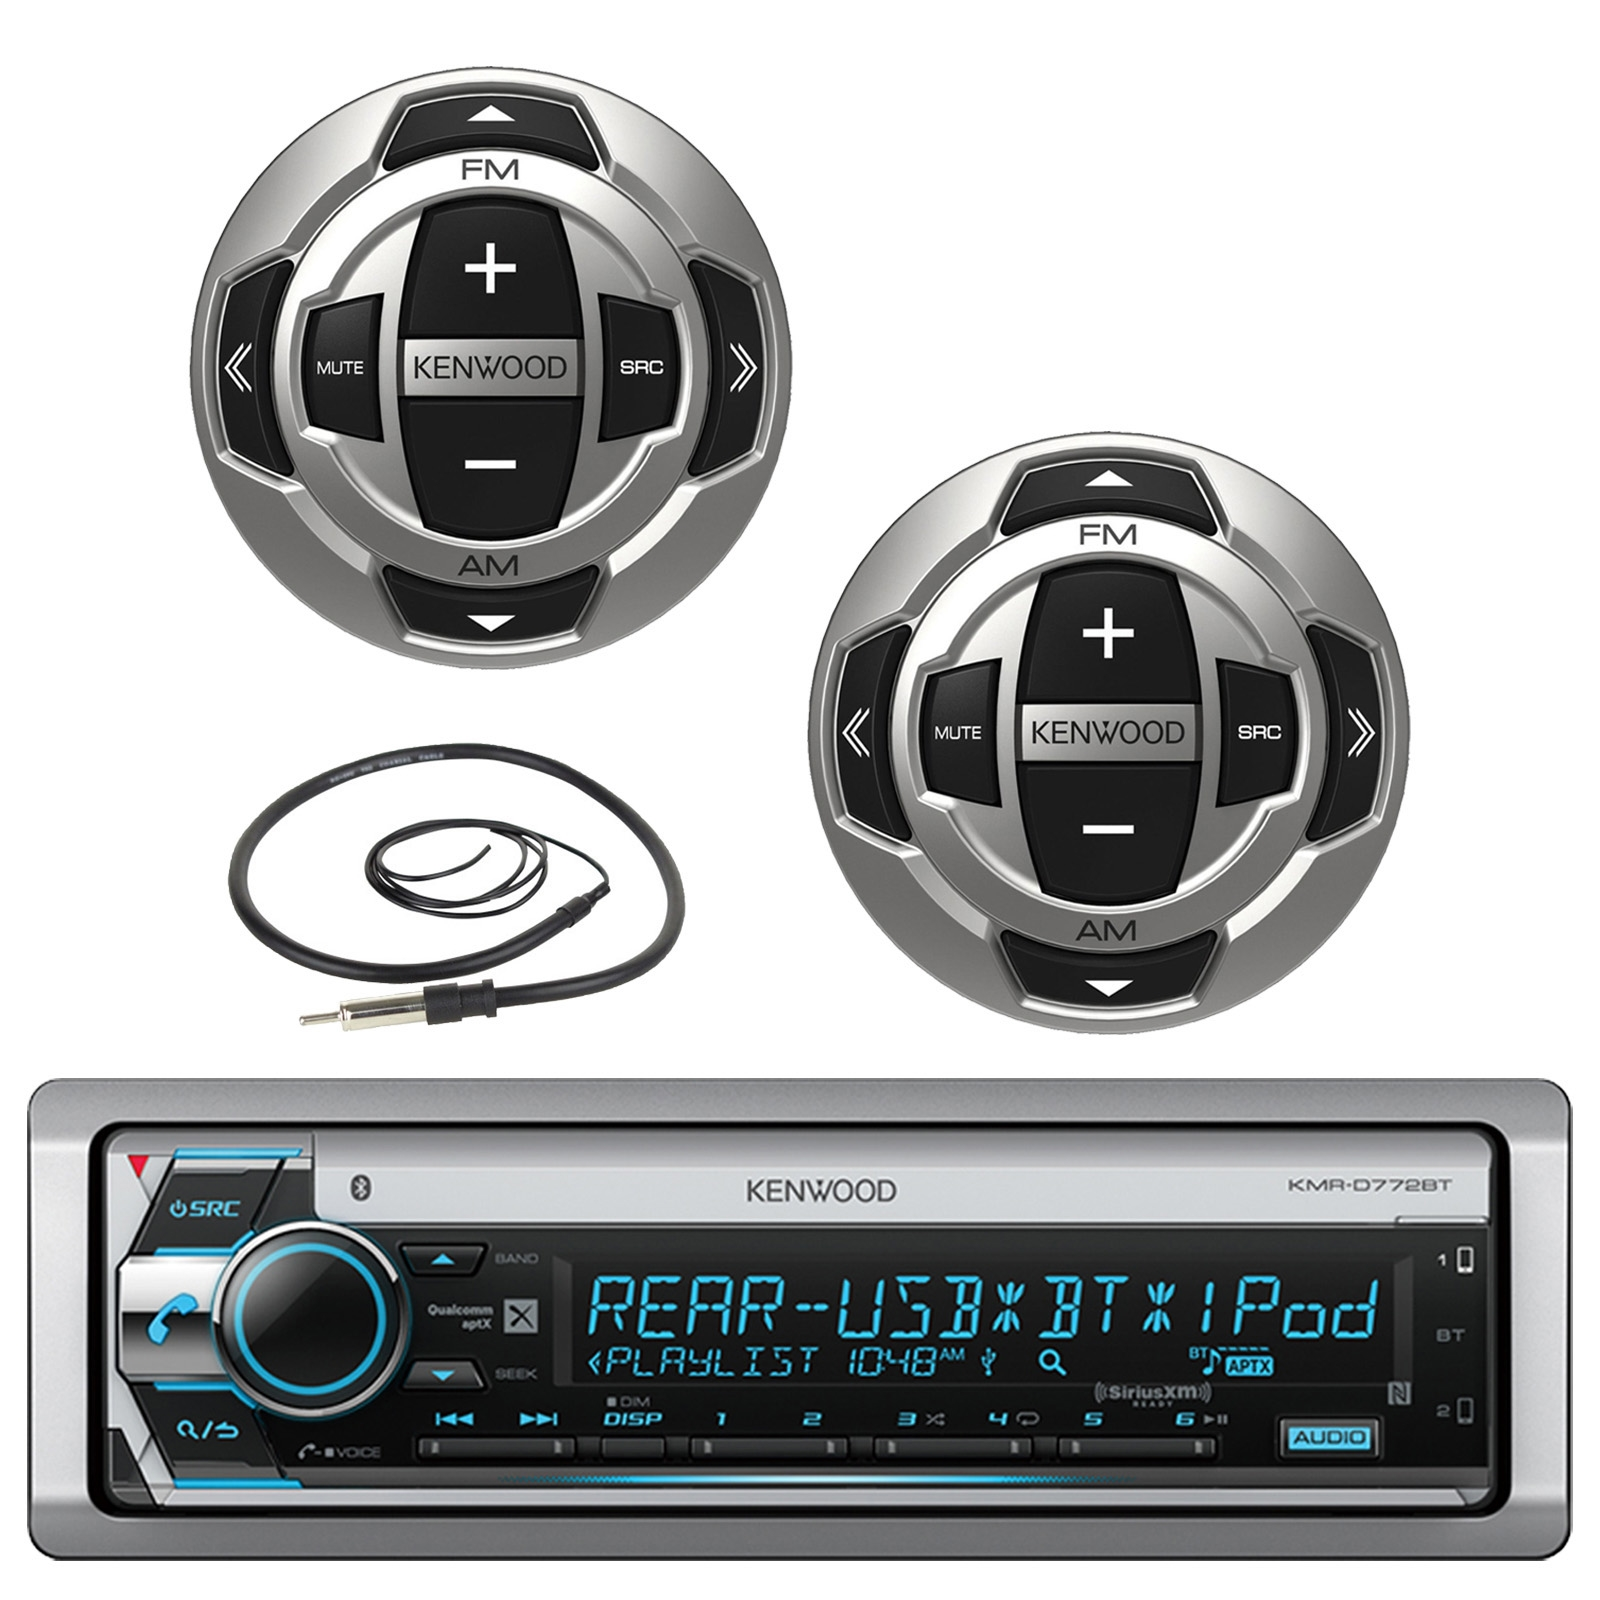 """Kenwood Single DIN Marine Boat Yacht USB CD Player Bluetooth Stereo Receiver, 2x Kenwood Wired Remote, 22"""" Enrock AM/FM Antenna"""